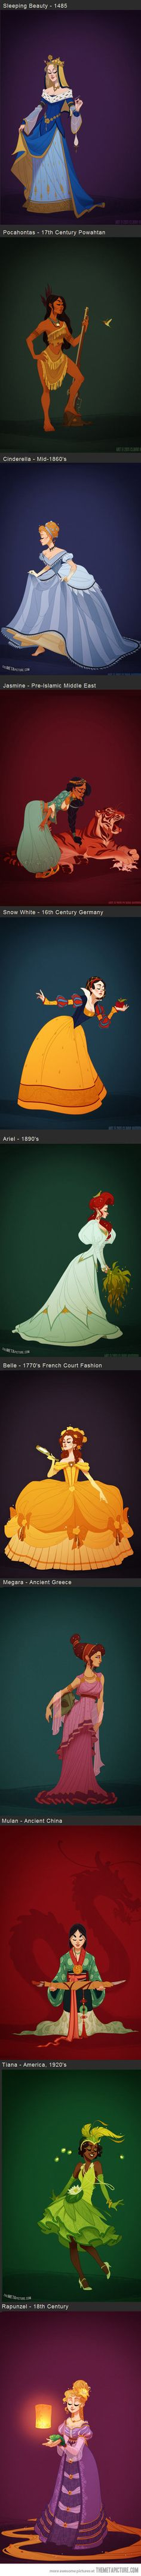 Disney Princesses in accurate period costumes